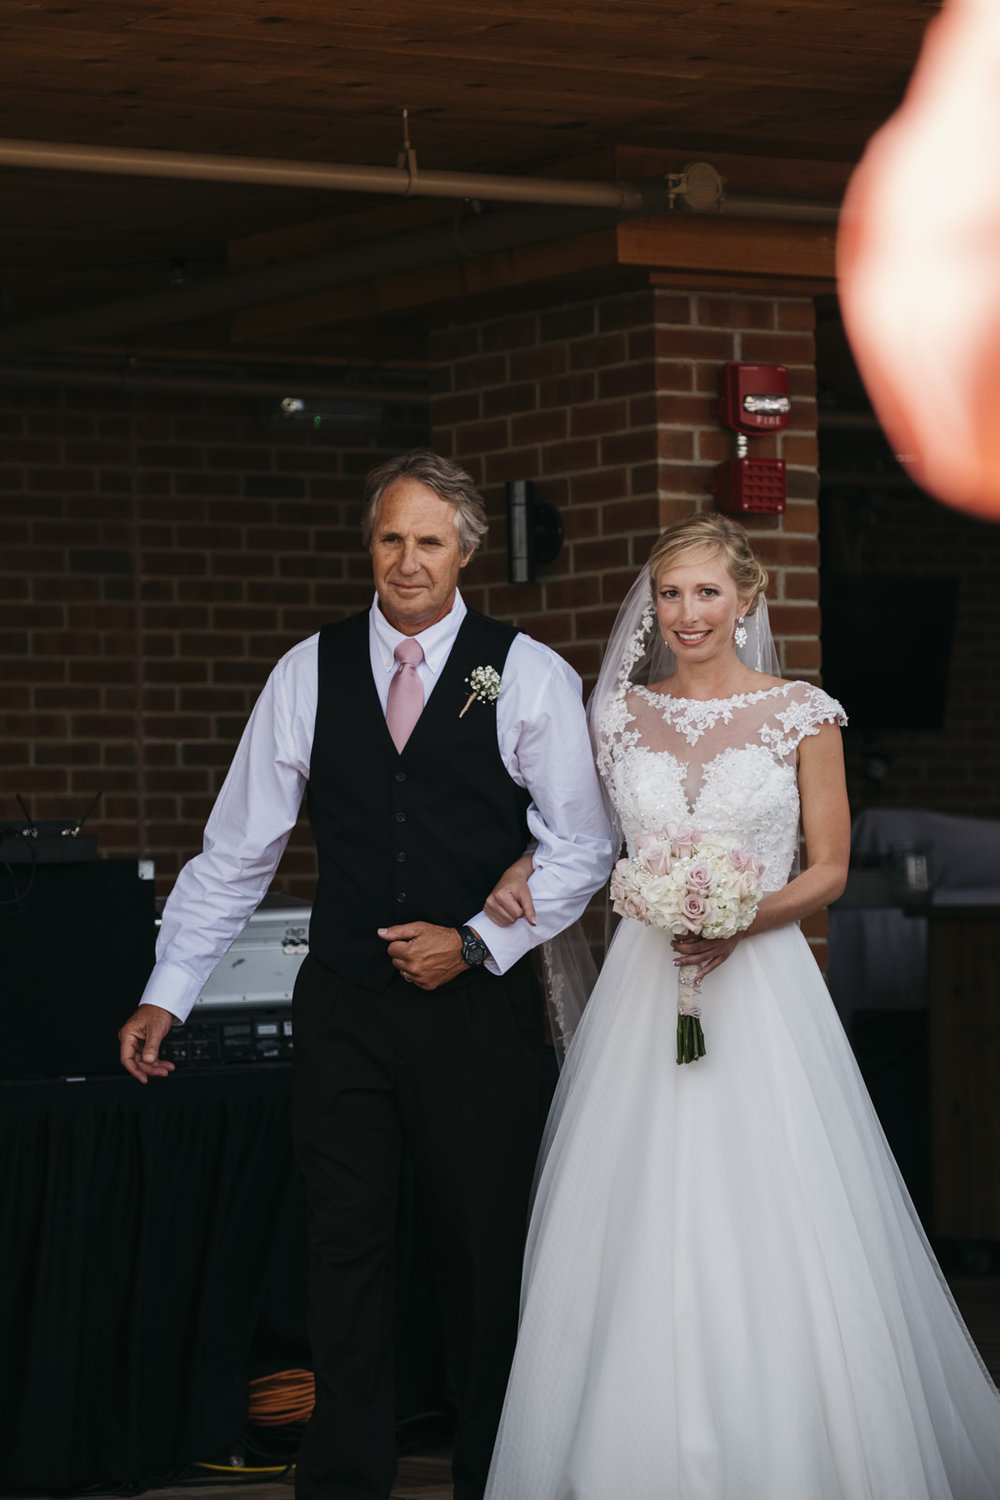 Father walks his daughter down the aisle at wedding ceremony in Ohio.